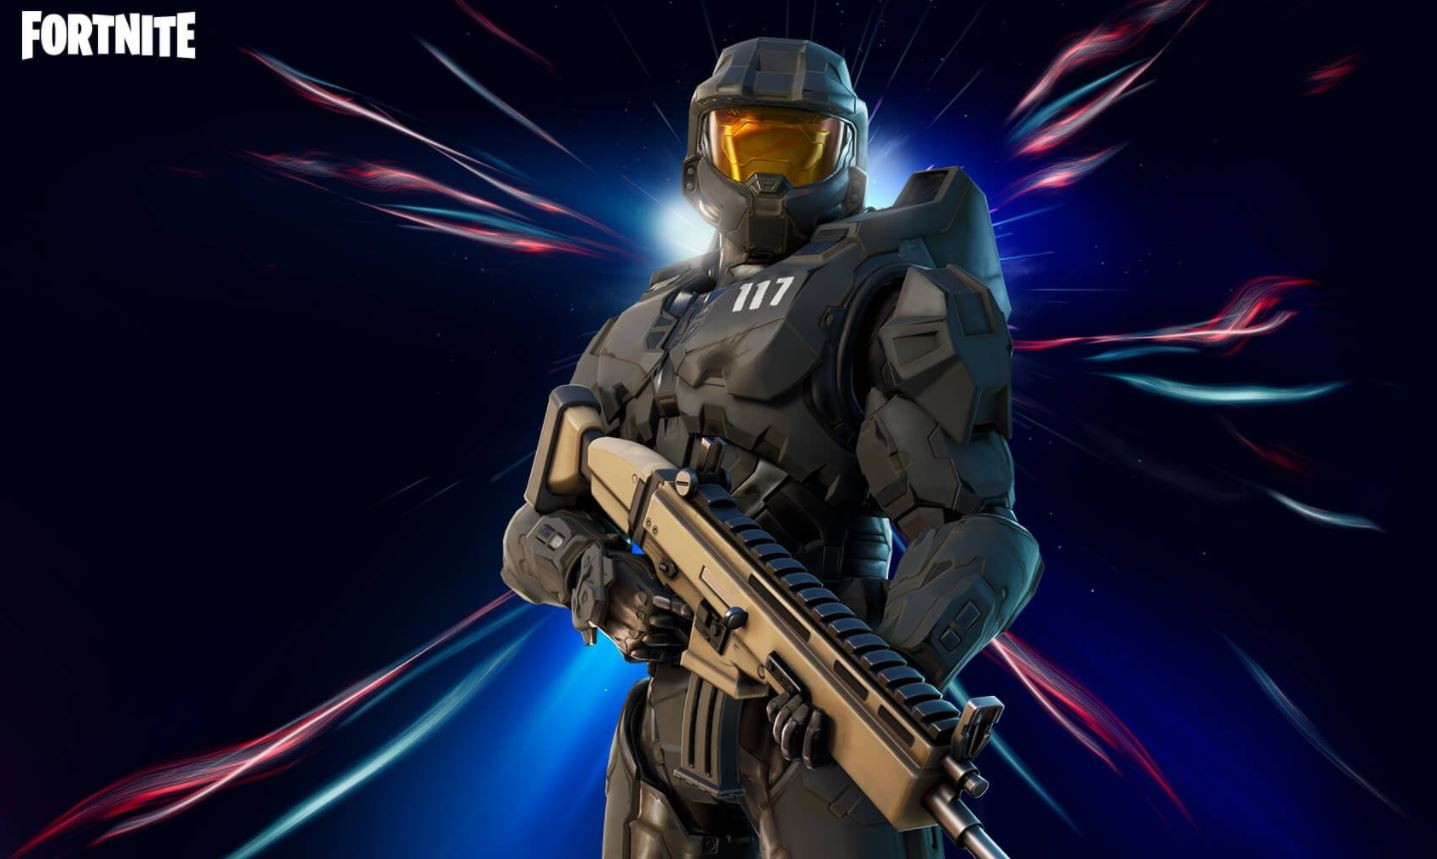 Cómo conseguir Master Chief Fortnite Matte Black